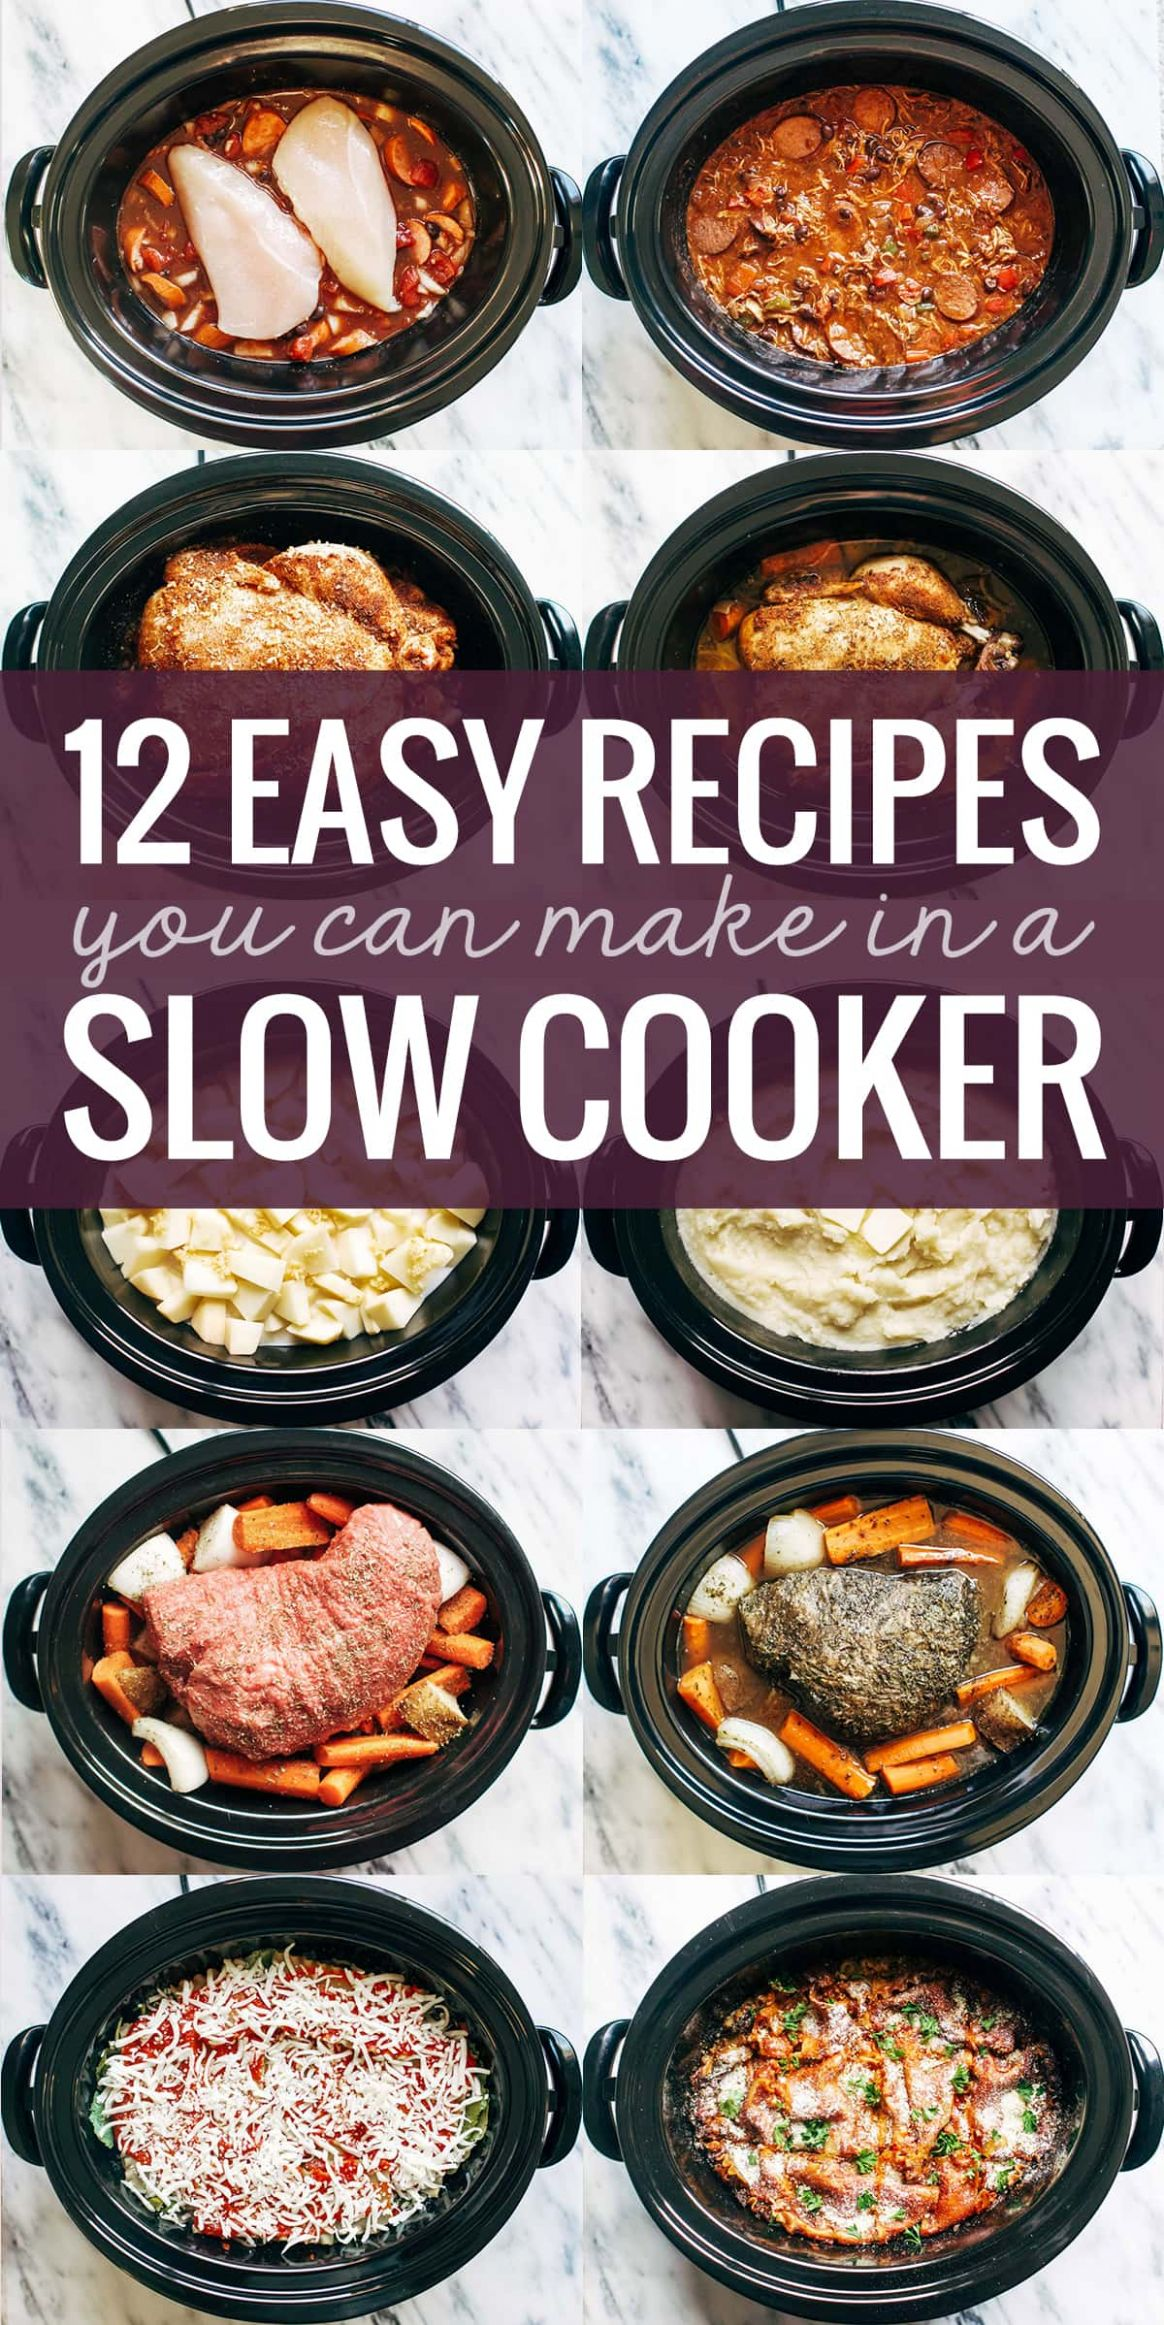 10 Easy Recipes You Can Make in a Slow Cooker - Pinch of Yum - Easy Recipes Crock Pot